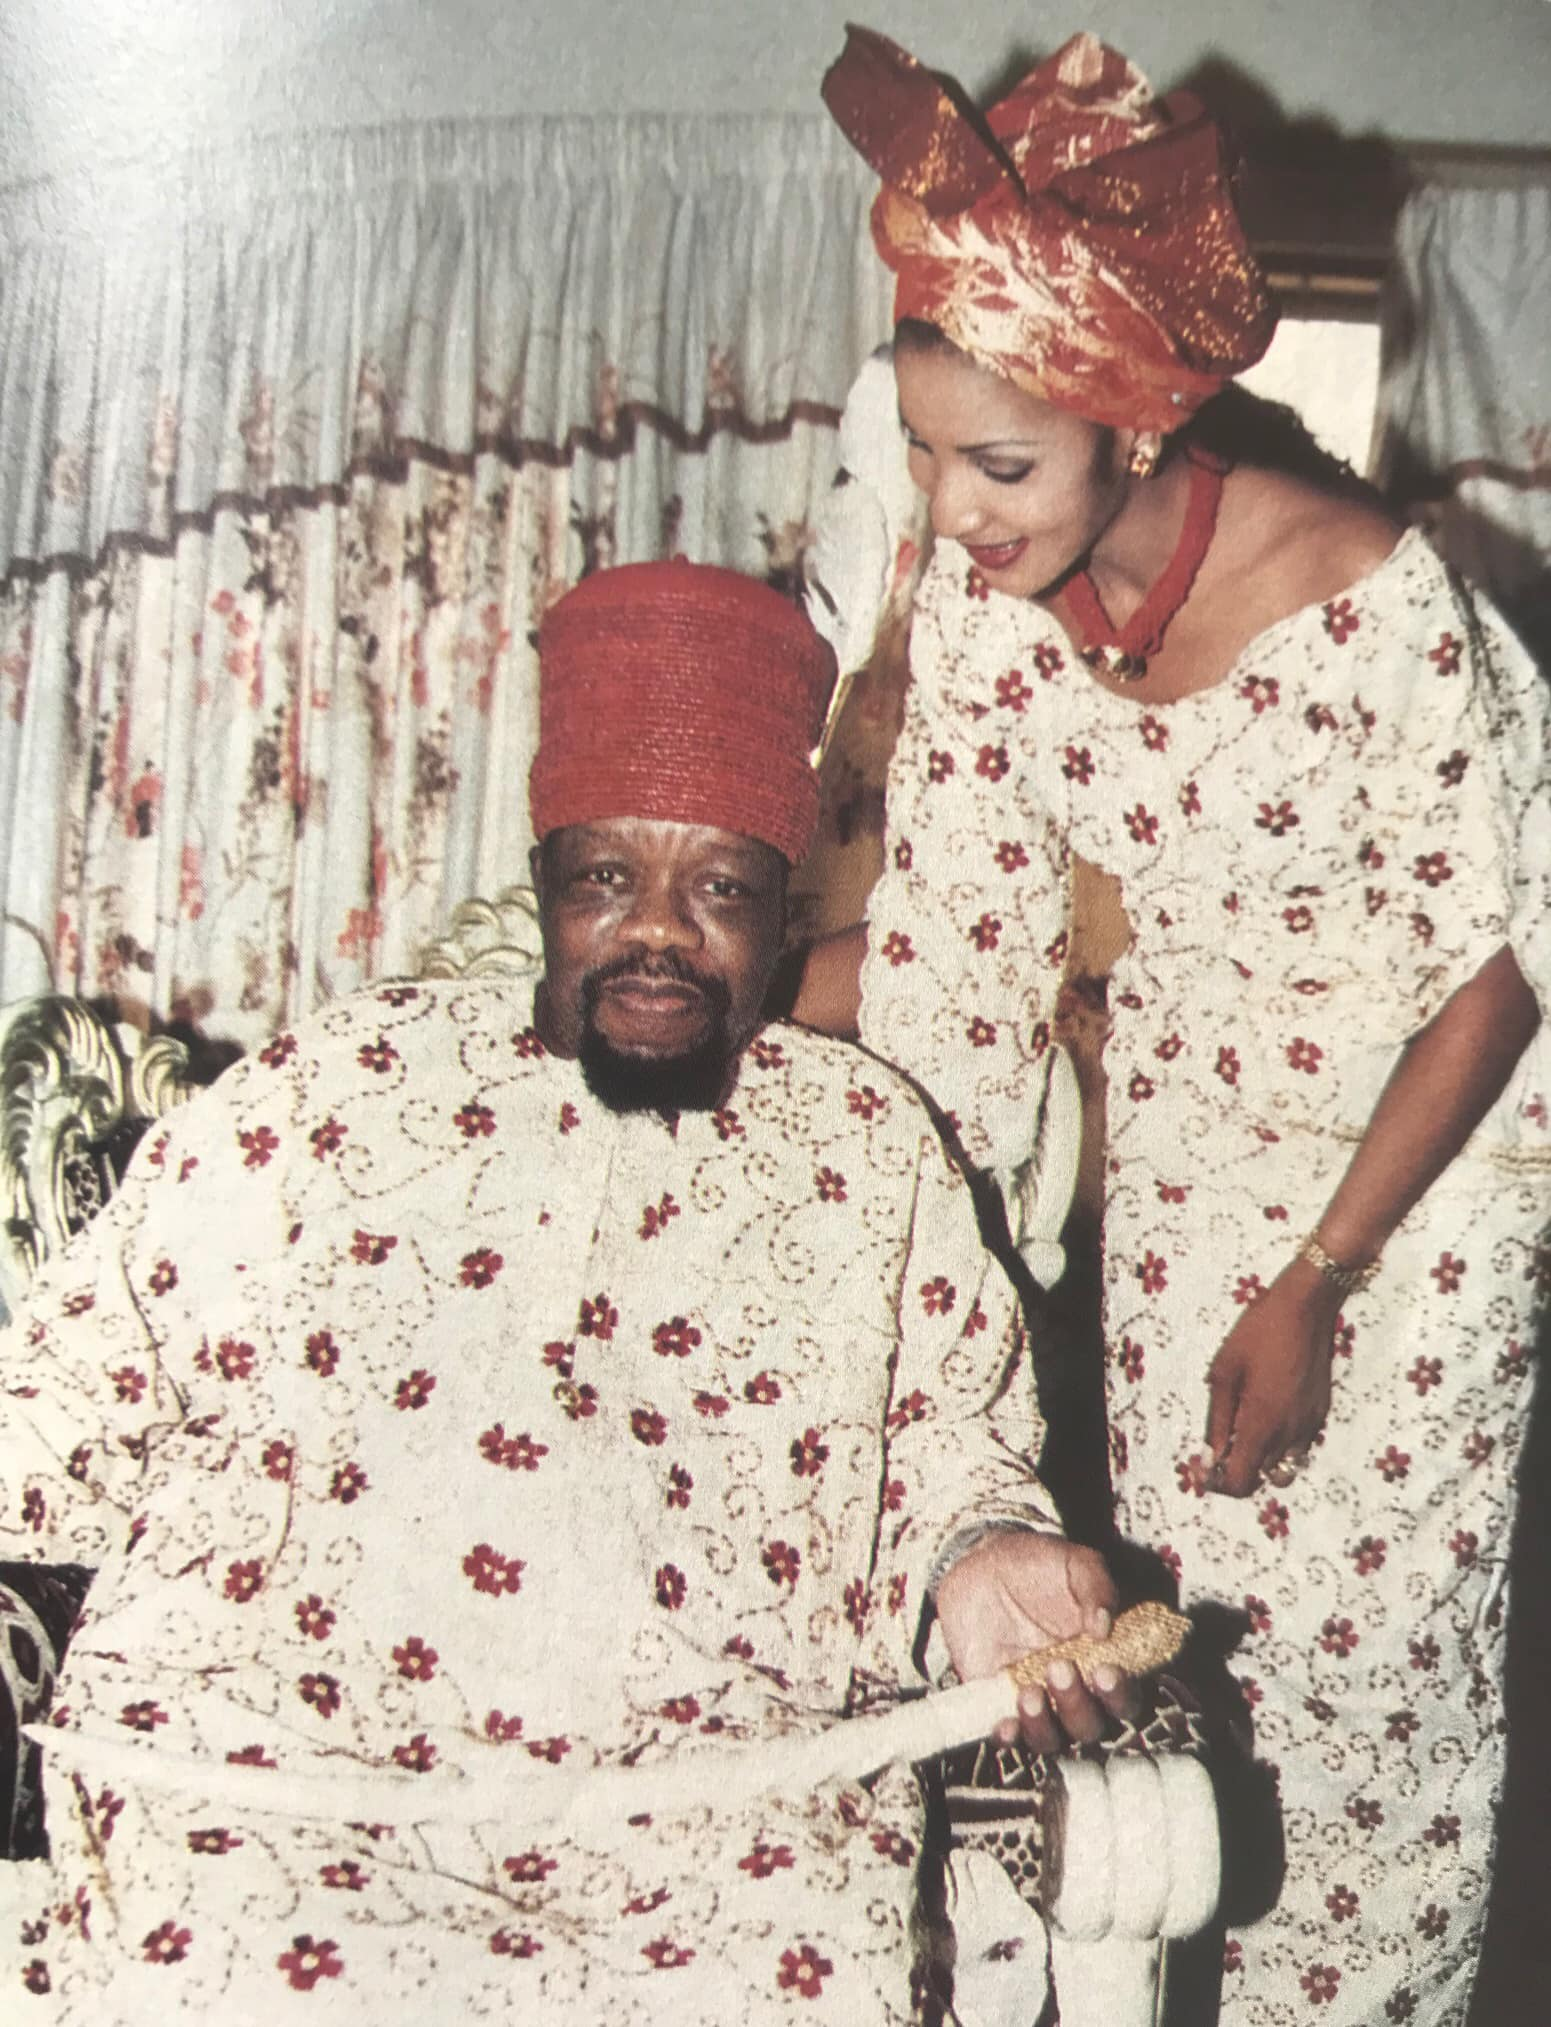 Bianca and late Igbo leader, Dim Odumegwu Ojukwu during their marriage in 2001. Bianca reveals why her father asked Ojukwu to pay 'impossible bride price' of 100 pre -independence copper coins on her